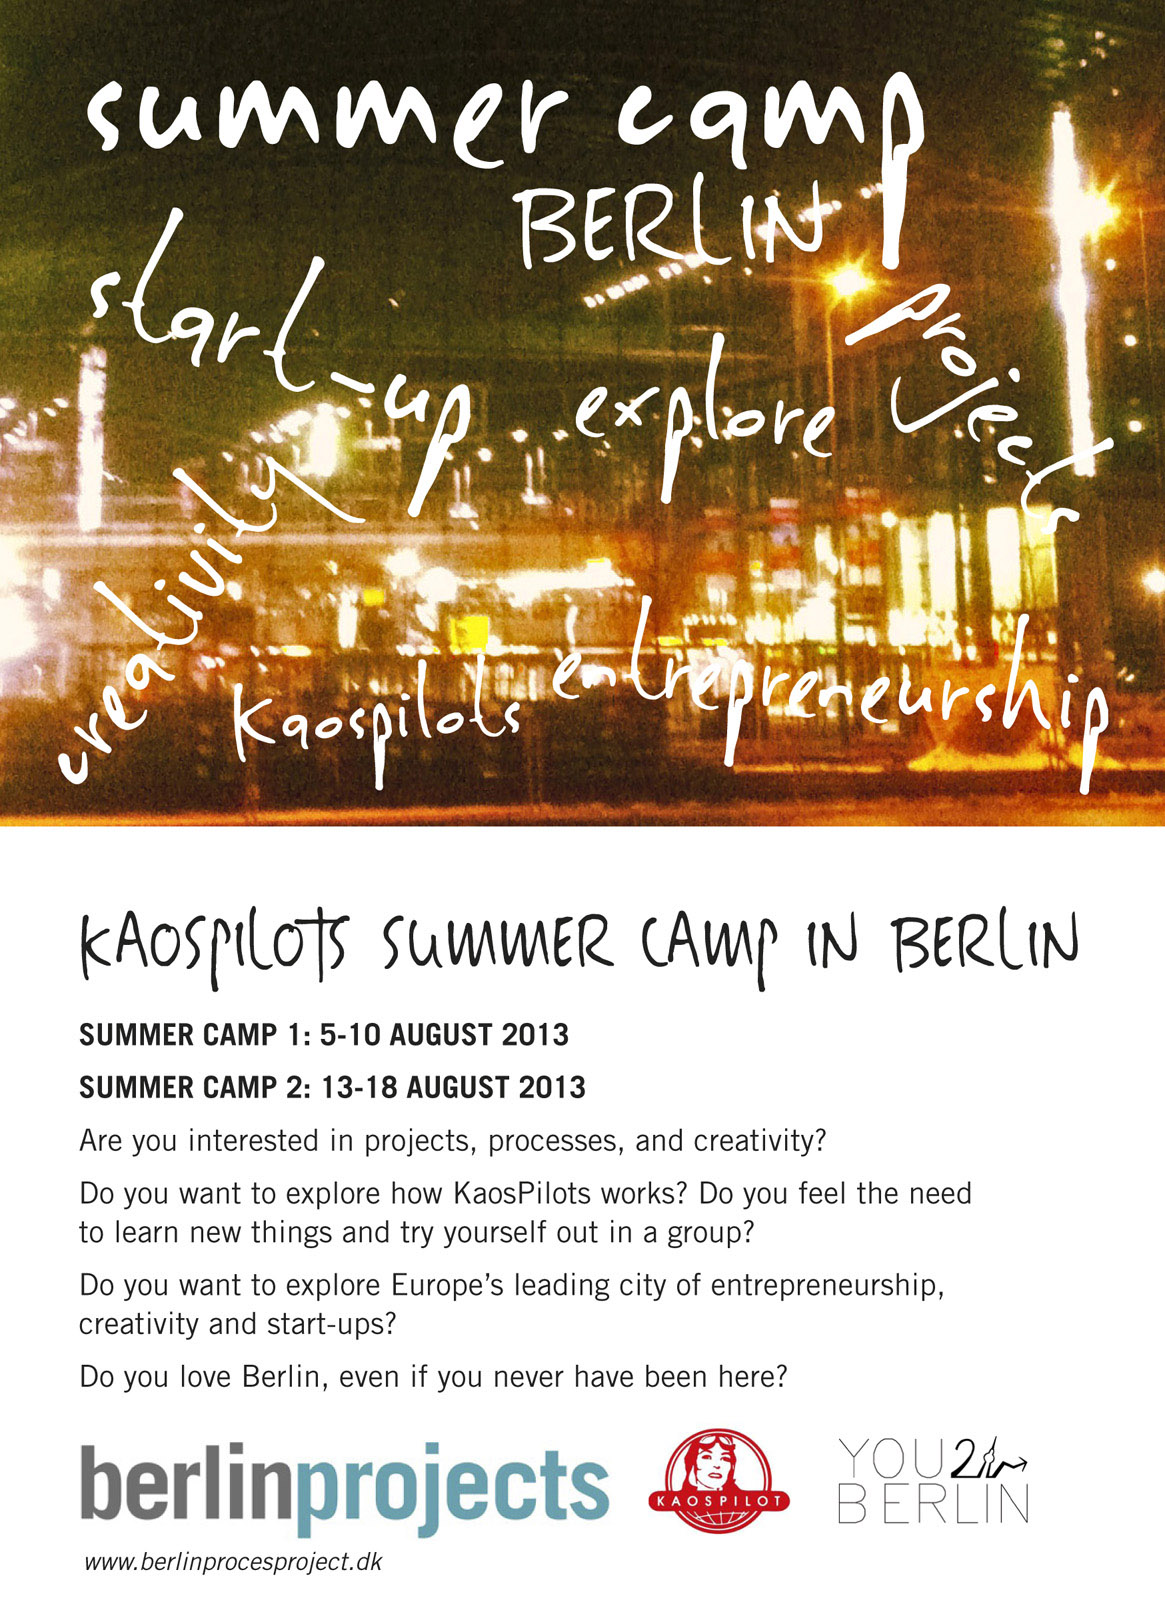 Summercamp Berlin 2013